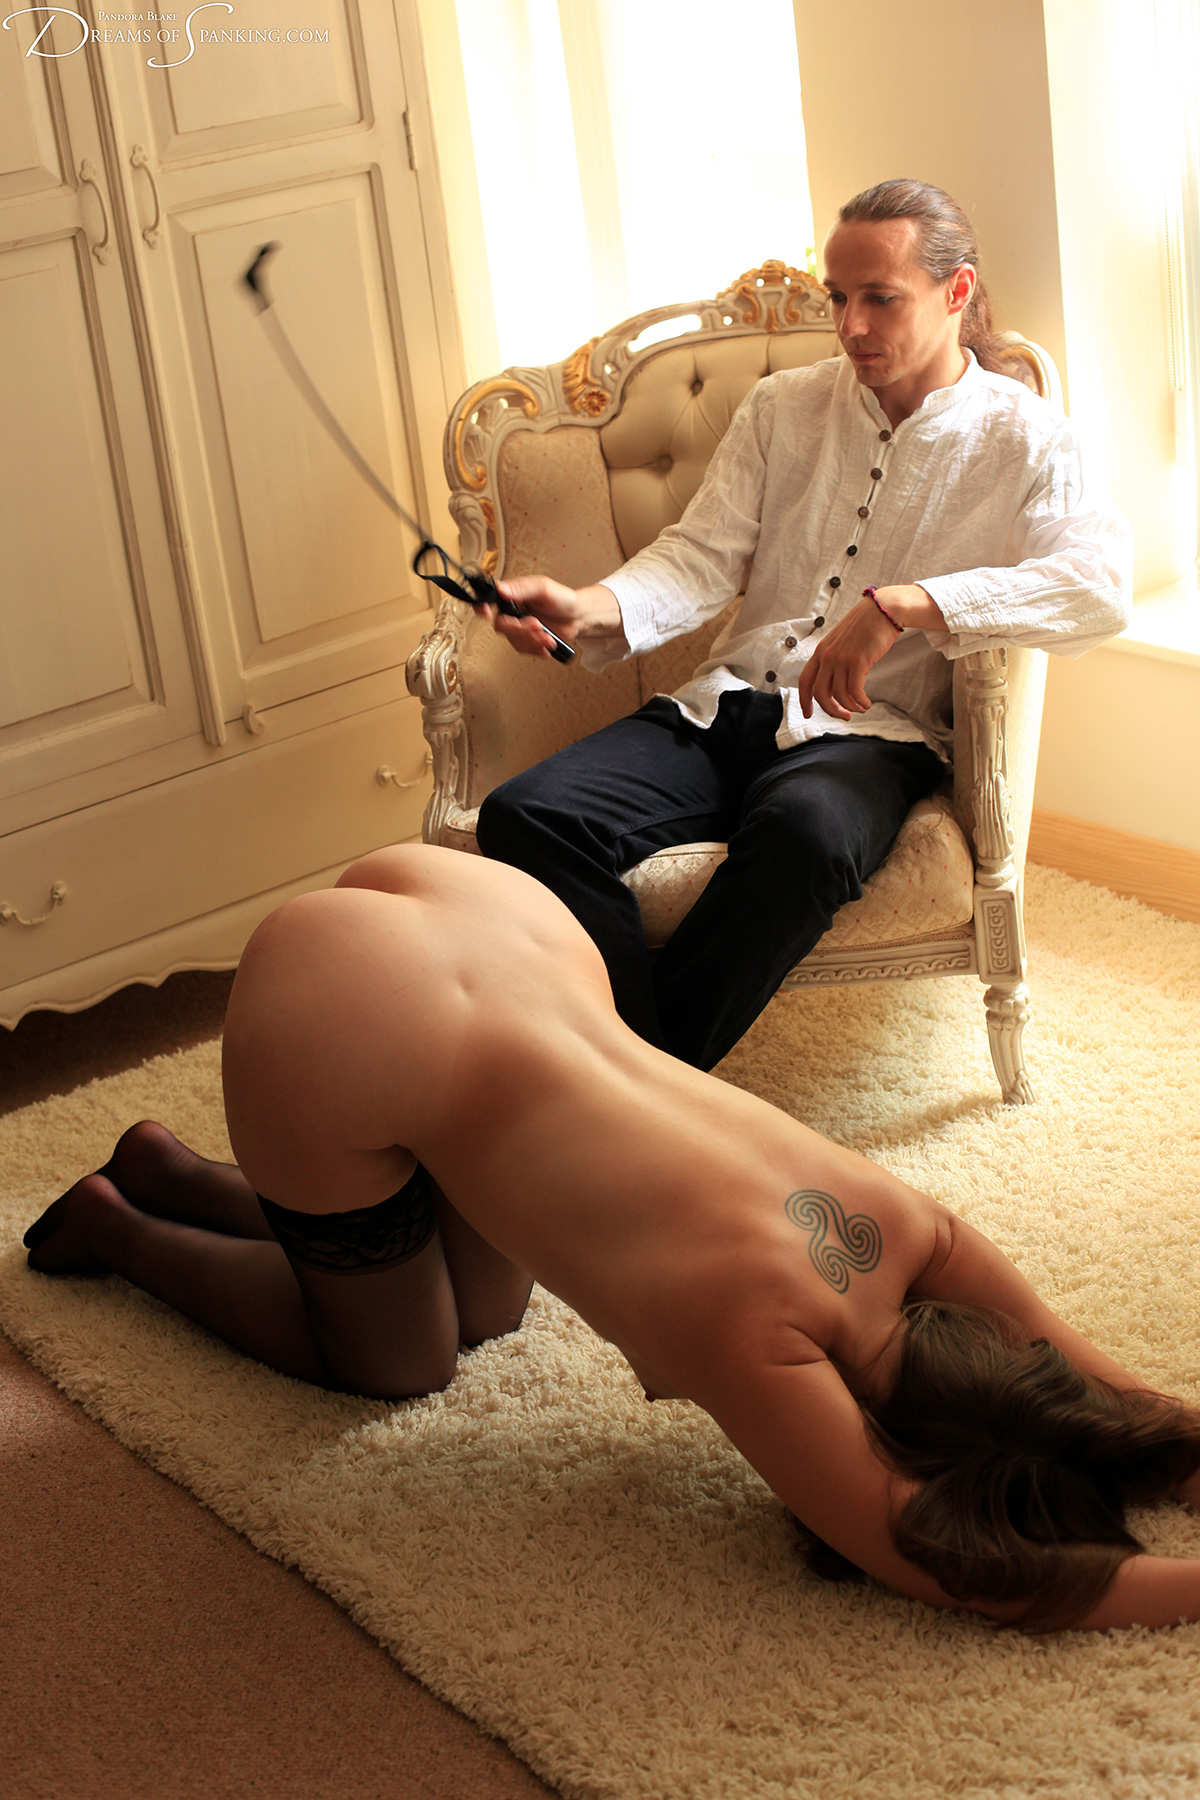 Girls into spanking